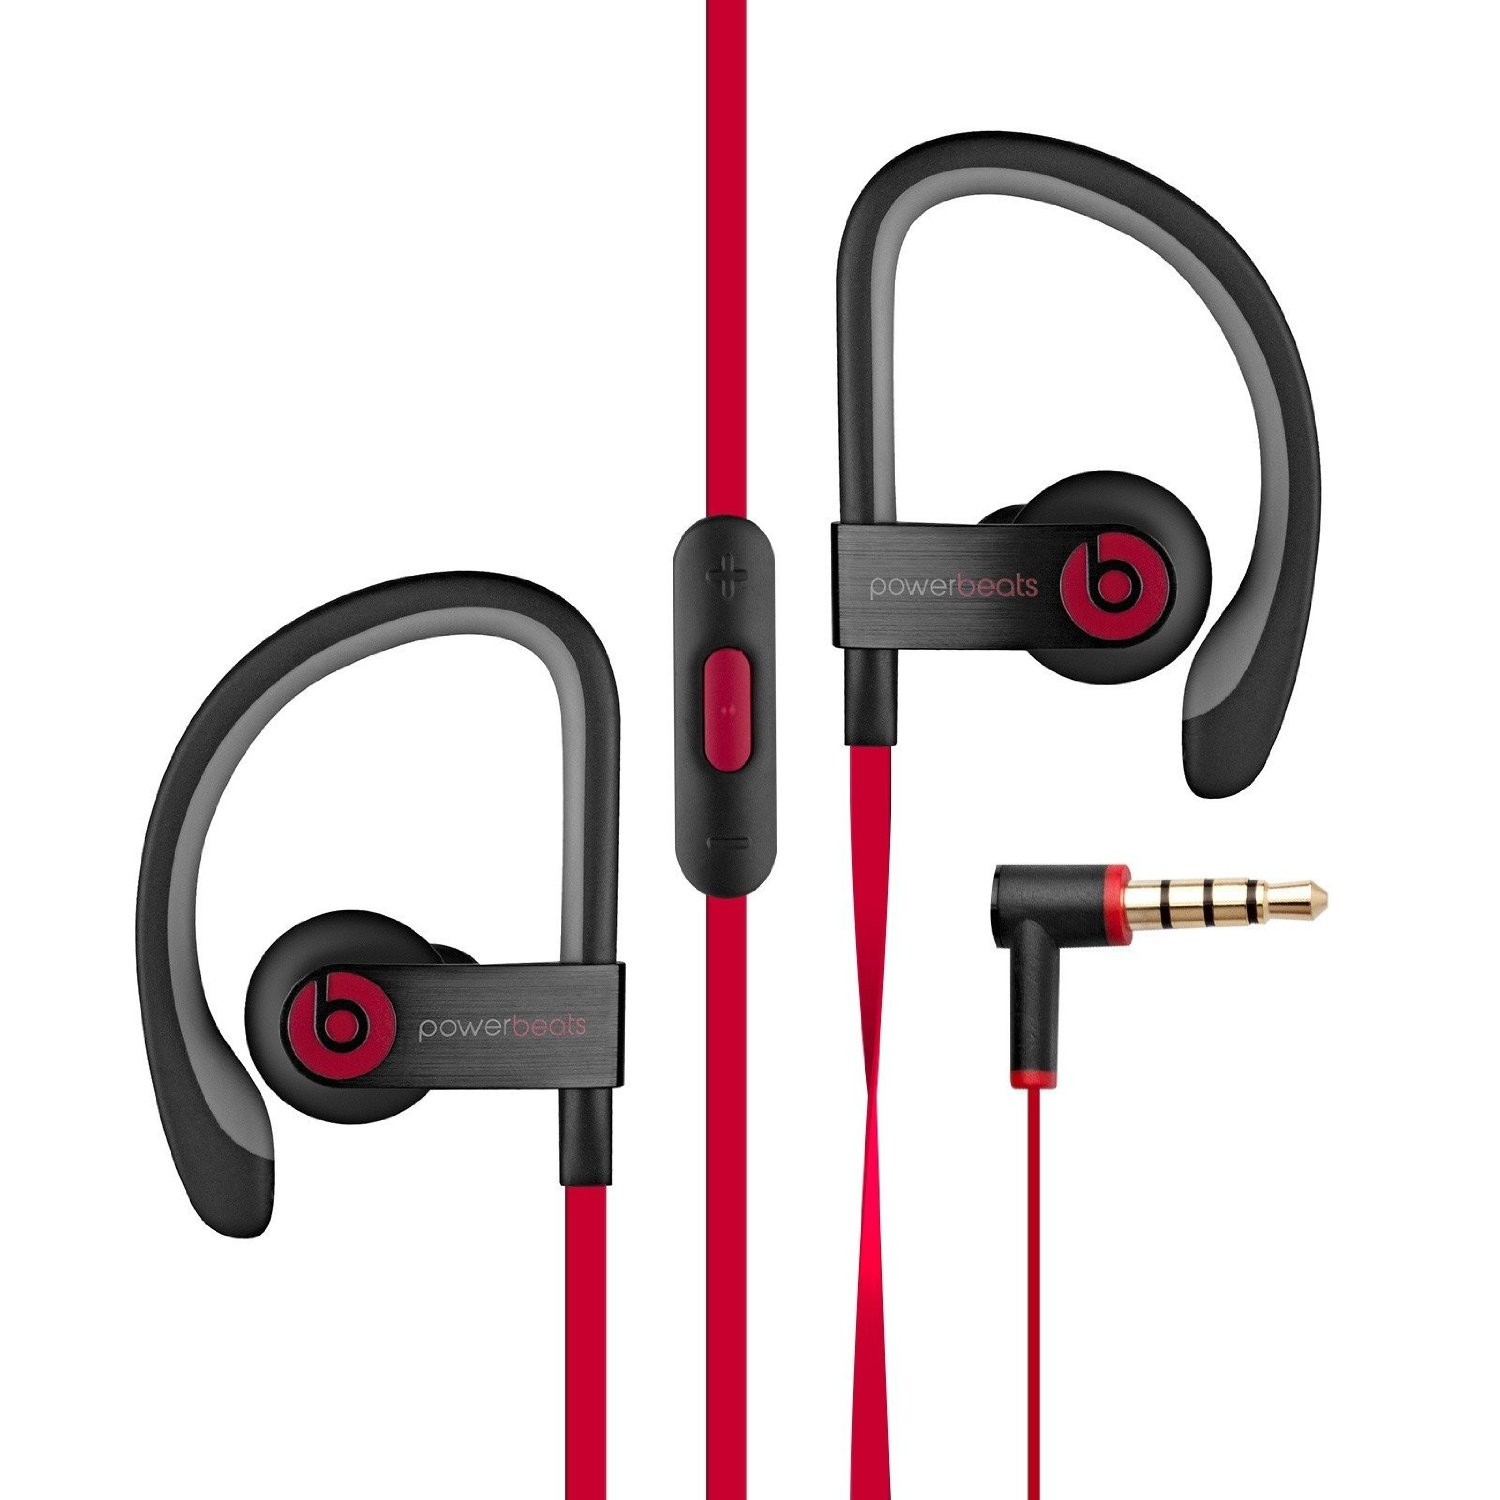 Beats Powerbeats 2 Wired In-Ear Headphone - Black (Certified Refurbished) - WIRED